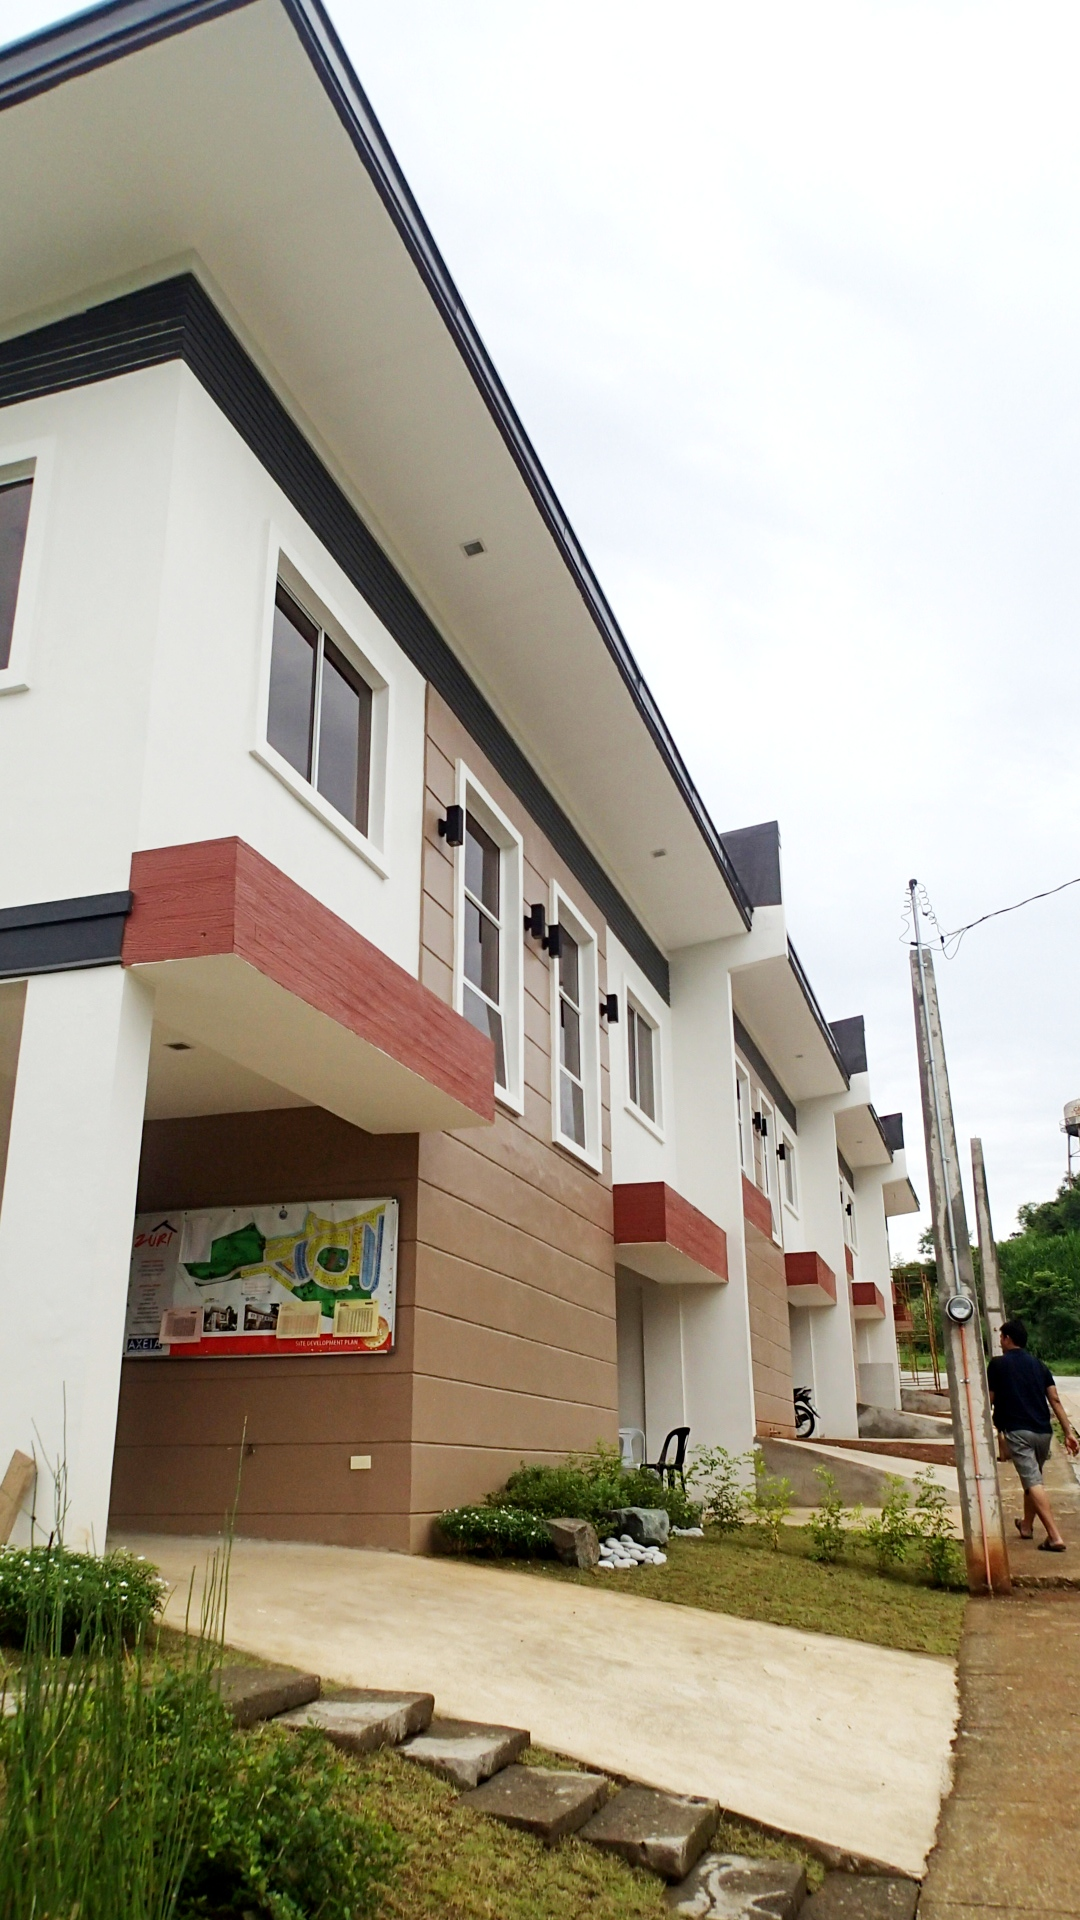 Taytay, Rizal, Townhouse for Sale in Taytay - Zuri Residences, Townhouse for Sale in Taytay - Zuri Residences, Zuri Residences - House for Sale in Taytay - Only 15k per Month, Low monthly investments